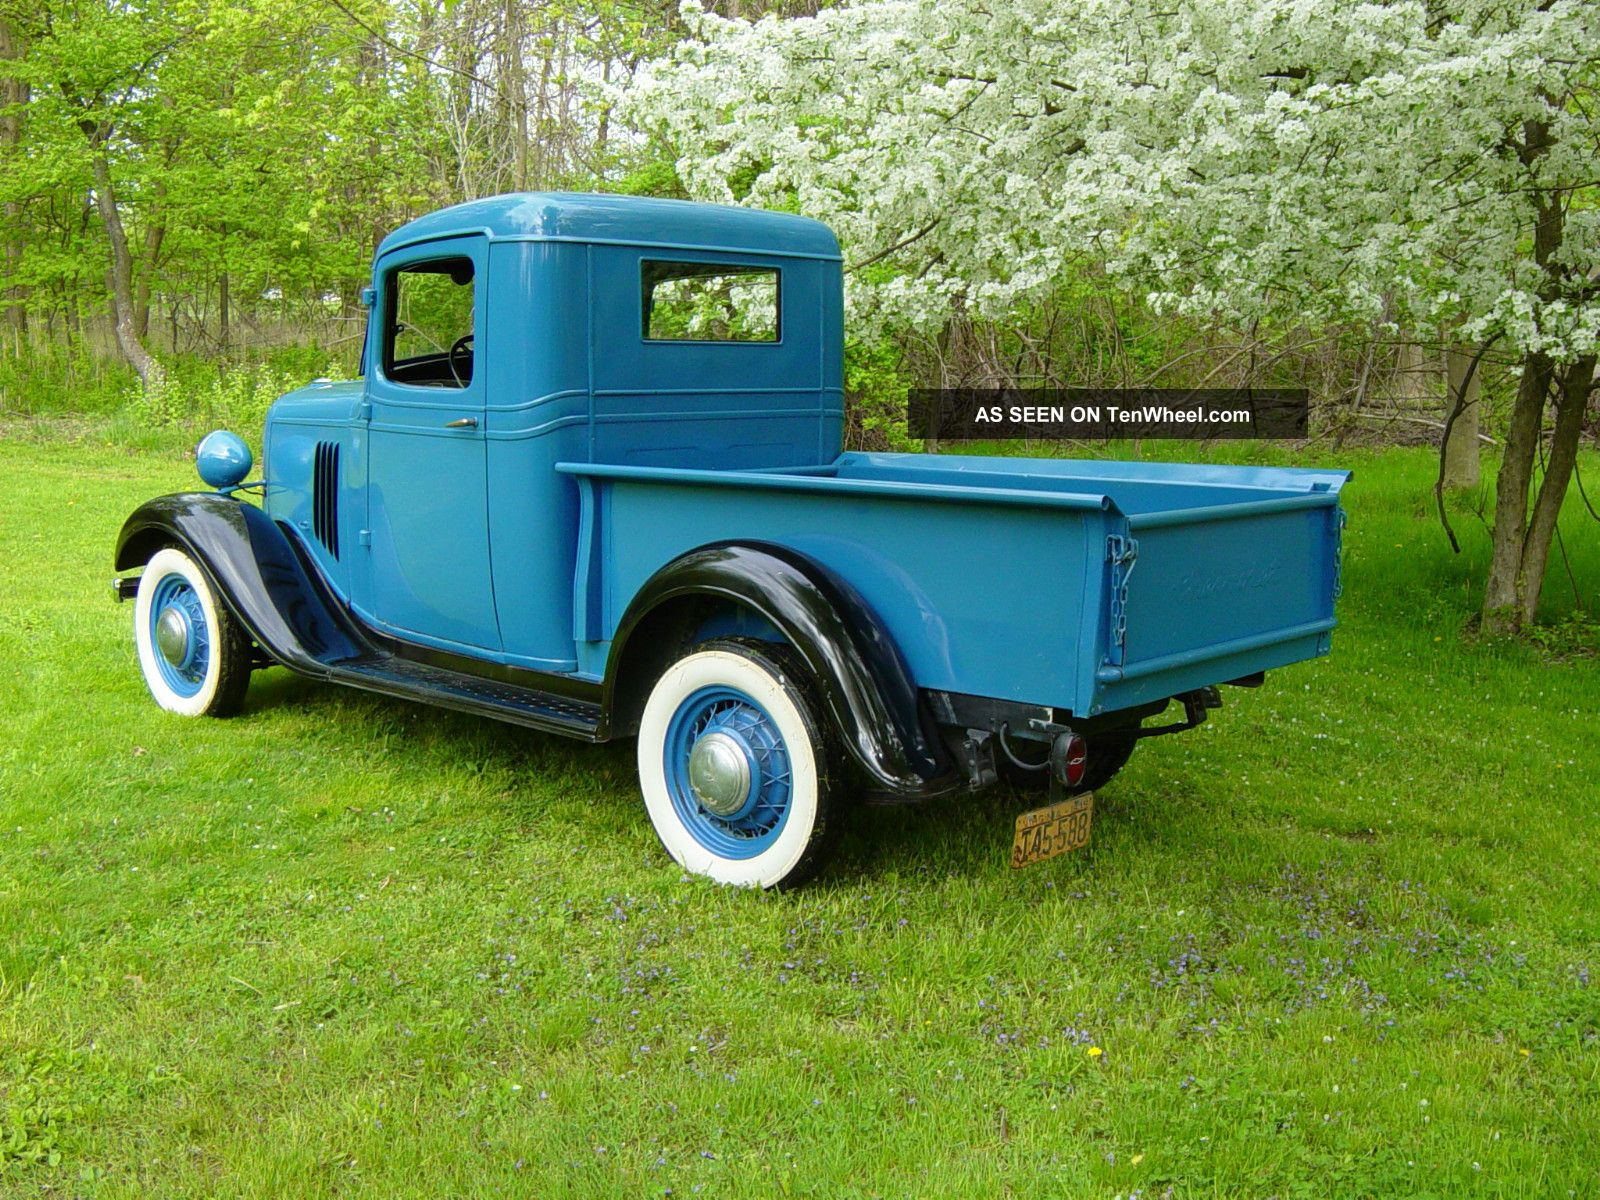 1935 Chevy 1 / 2 Ton Pick Up Truck Very Solid Older